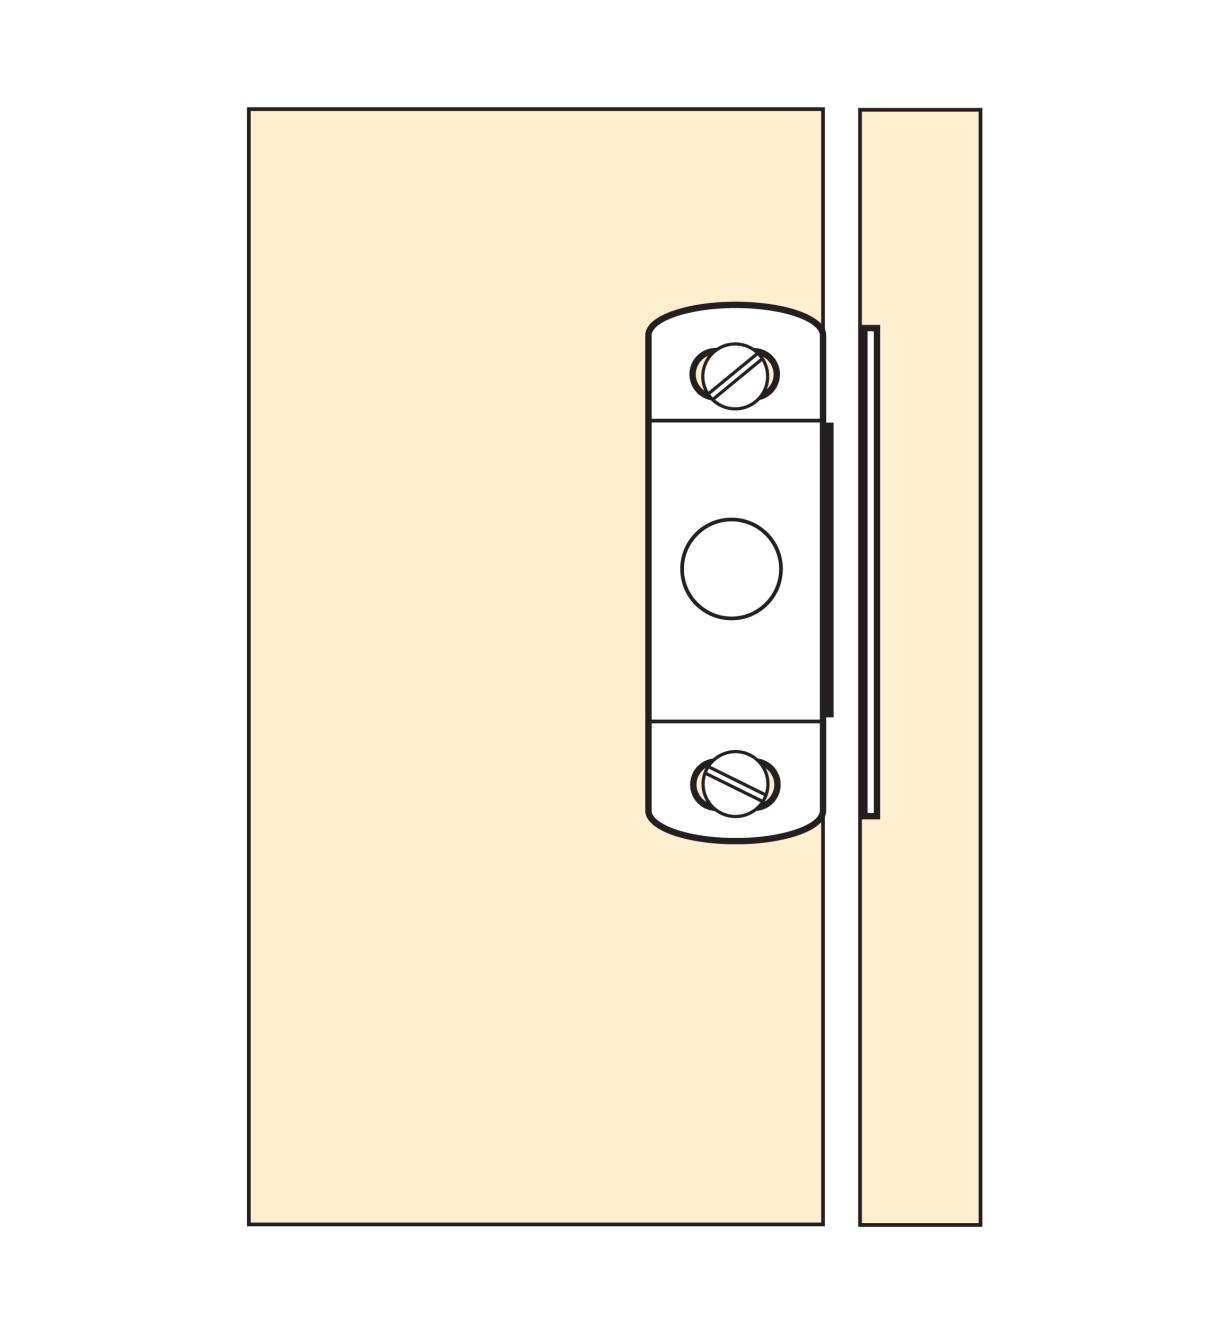 Illustration of Brass Magnetic Catch mounted on a cabinet door